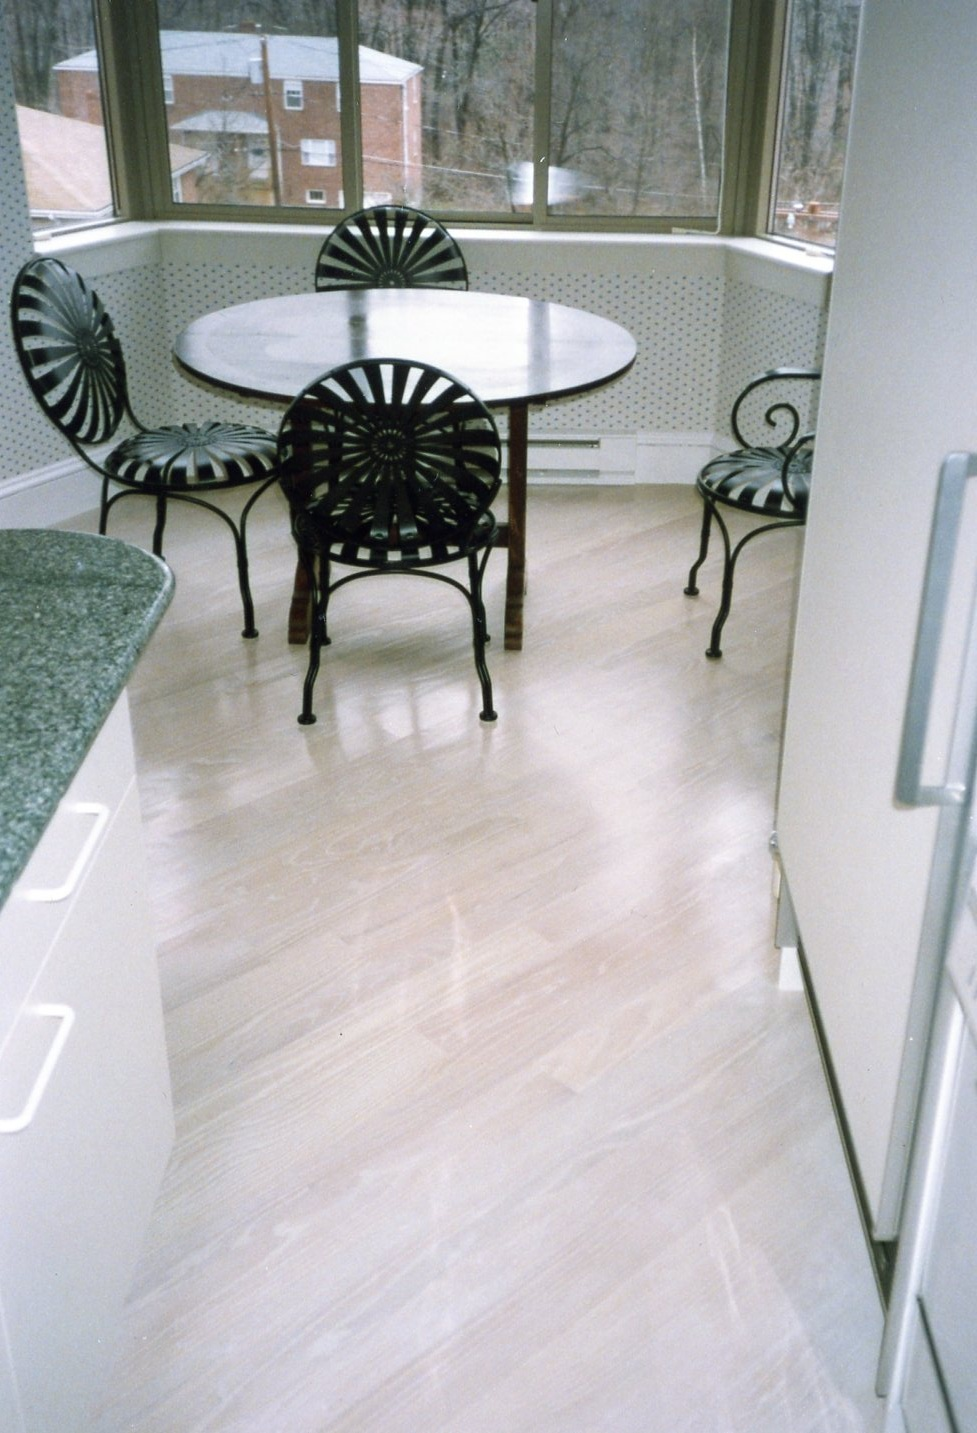 Pickled White hard Wood Floors | duffyfloors